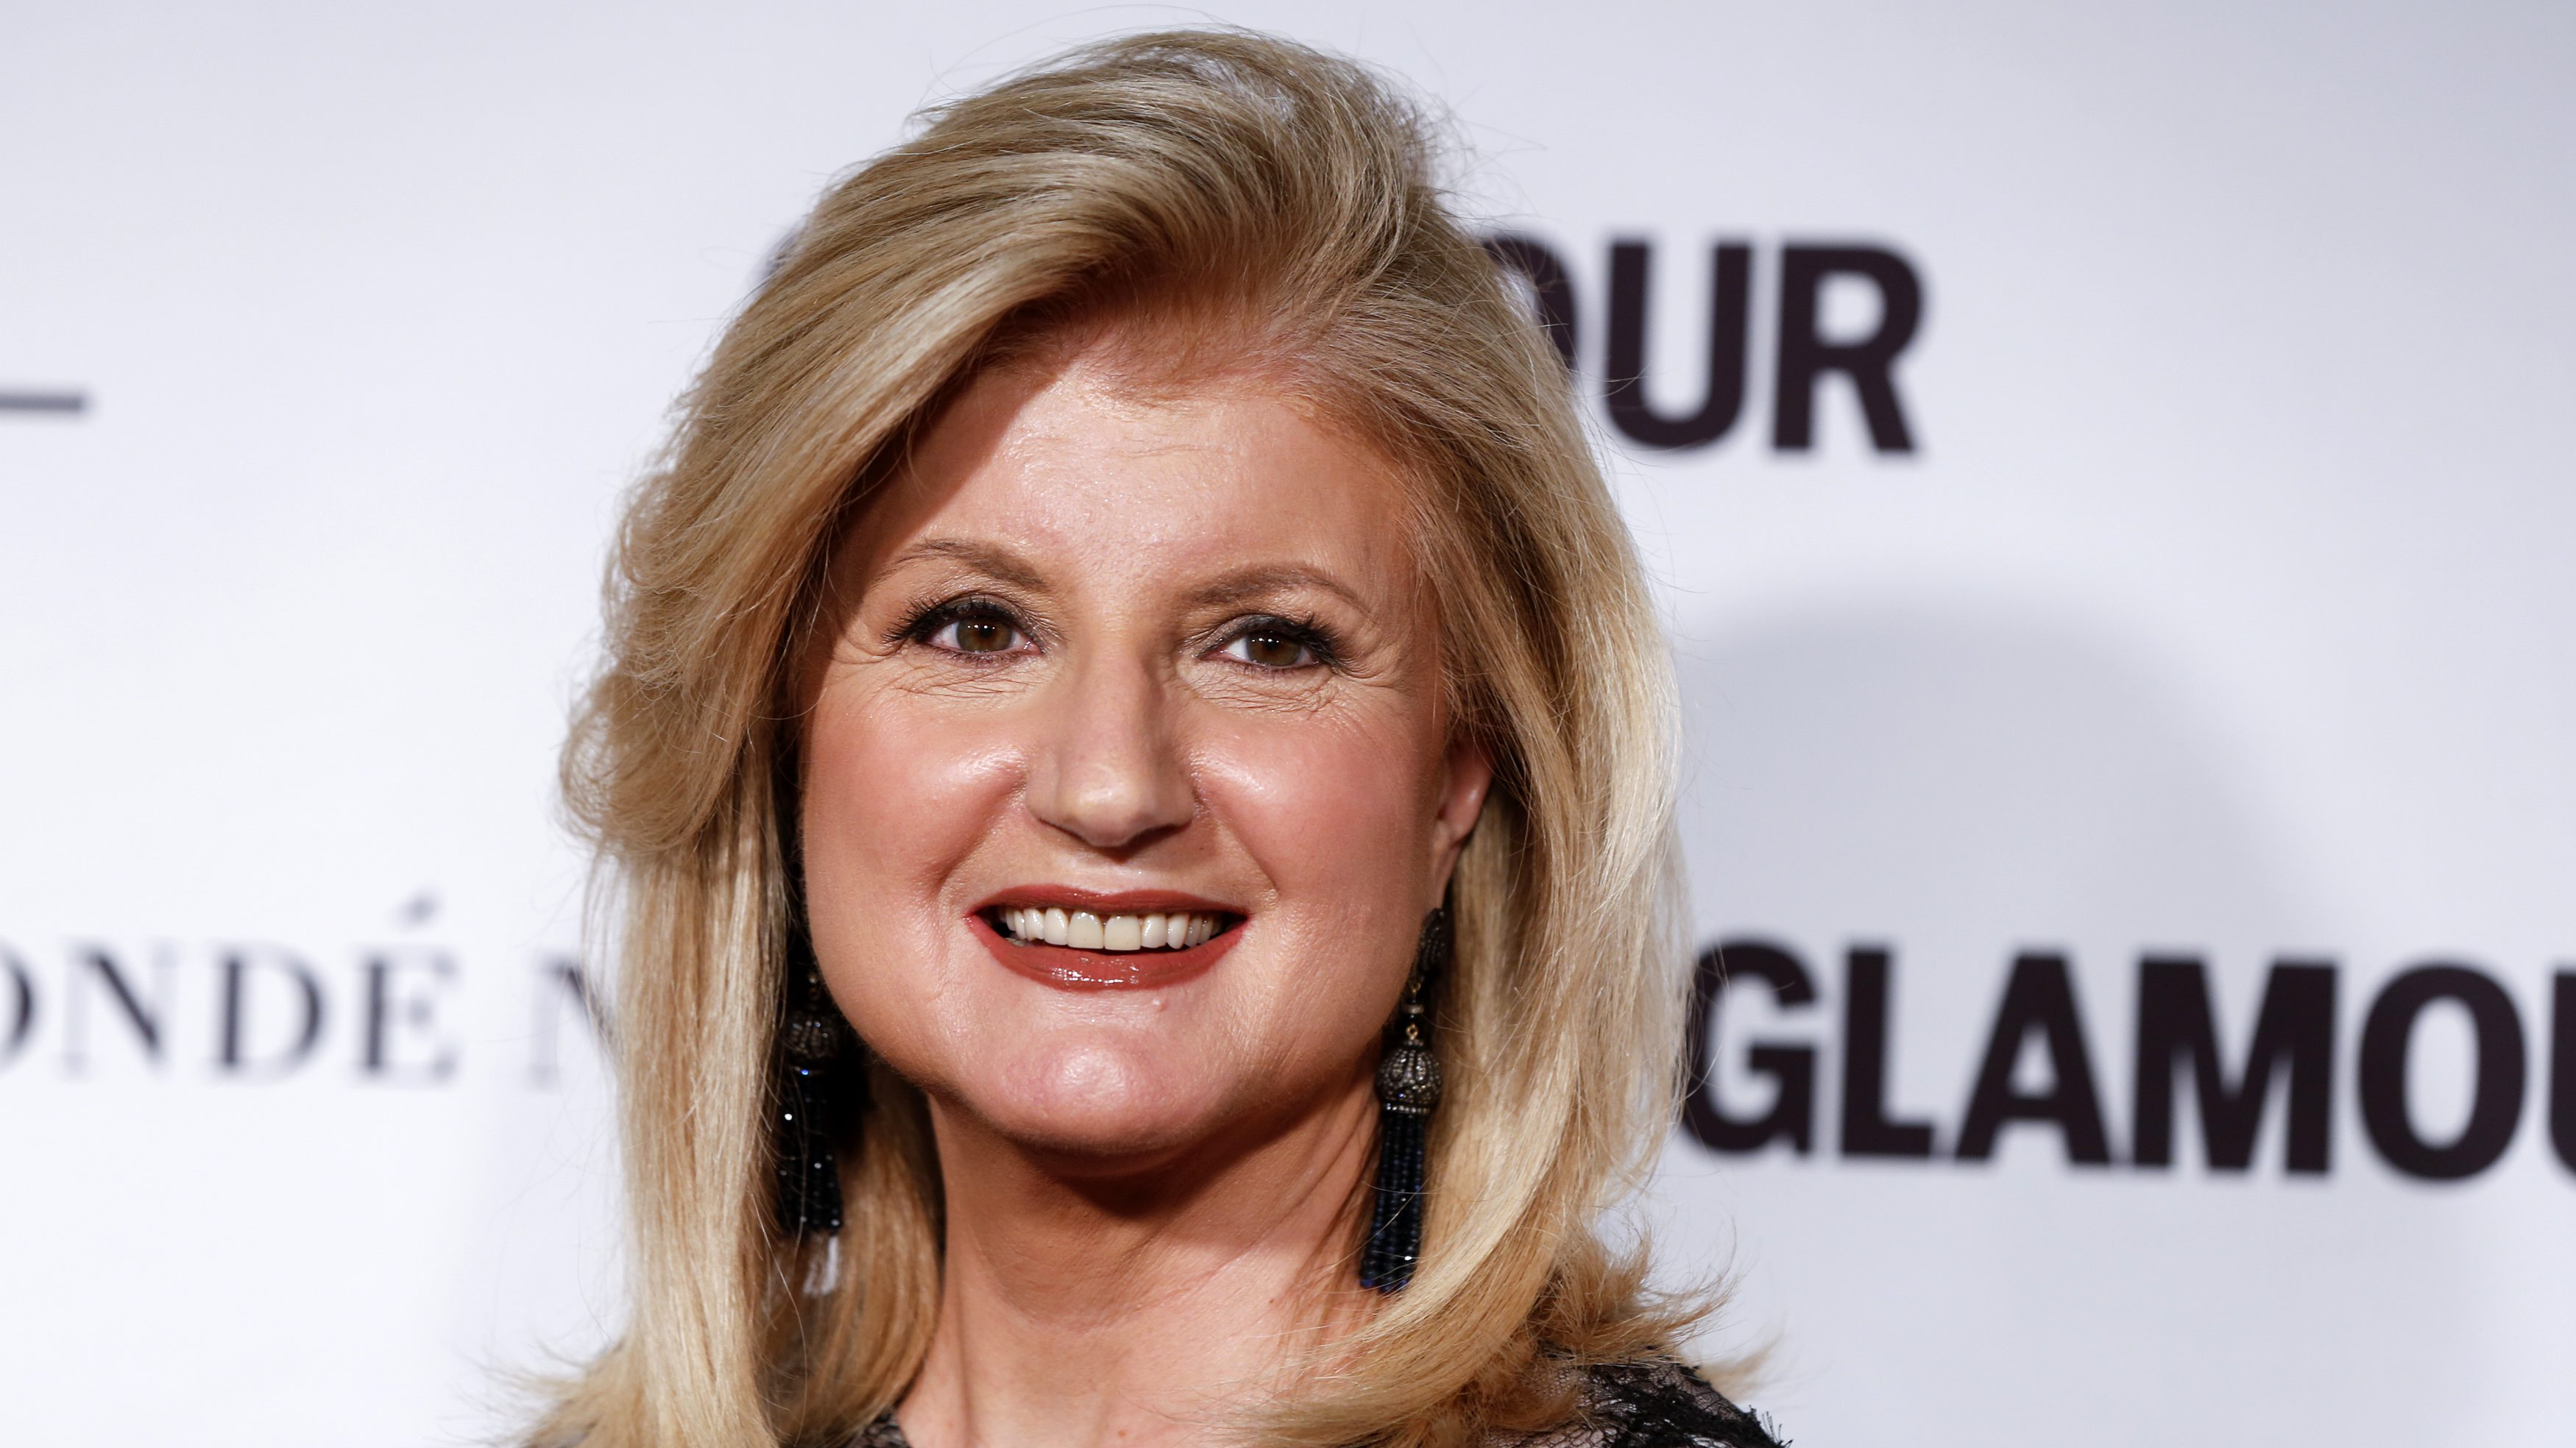 Arianna Huffington arrives for Glamour Magazine's annual Women of the Year award ceremony in New York November 10, 2014.  REUTERS/Lucas Jackson (UNITED STATES - Tags: ENTERTAINMENT HEADSHOT MEDIA BUSINESS) - RTR4DNNA